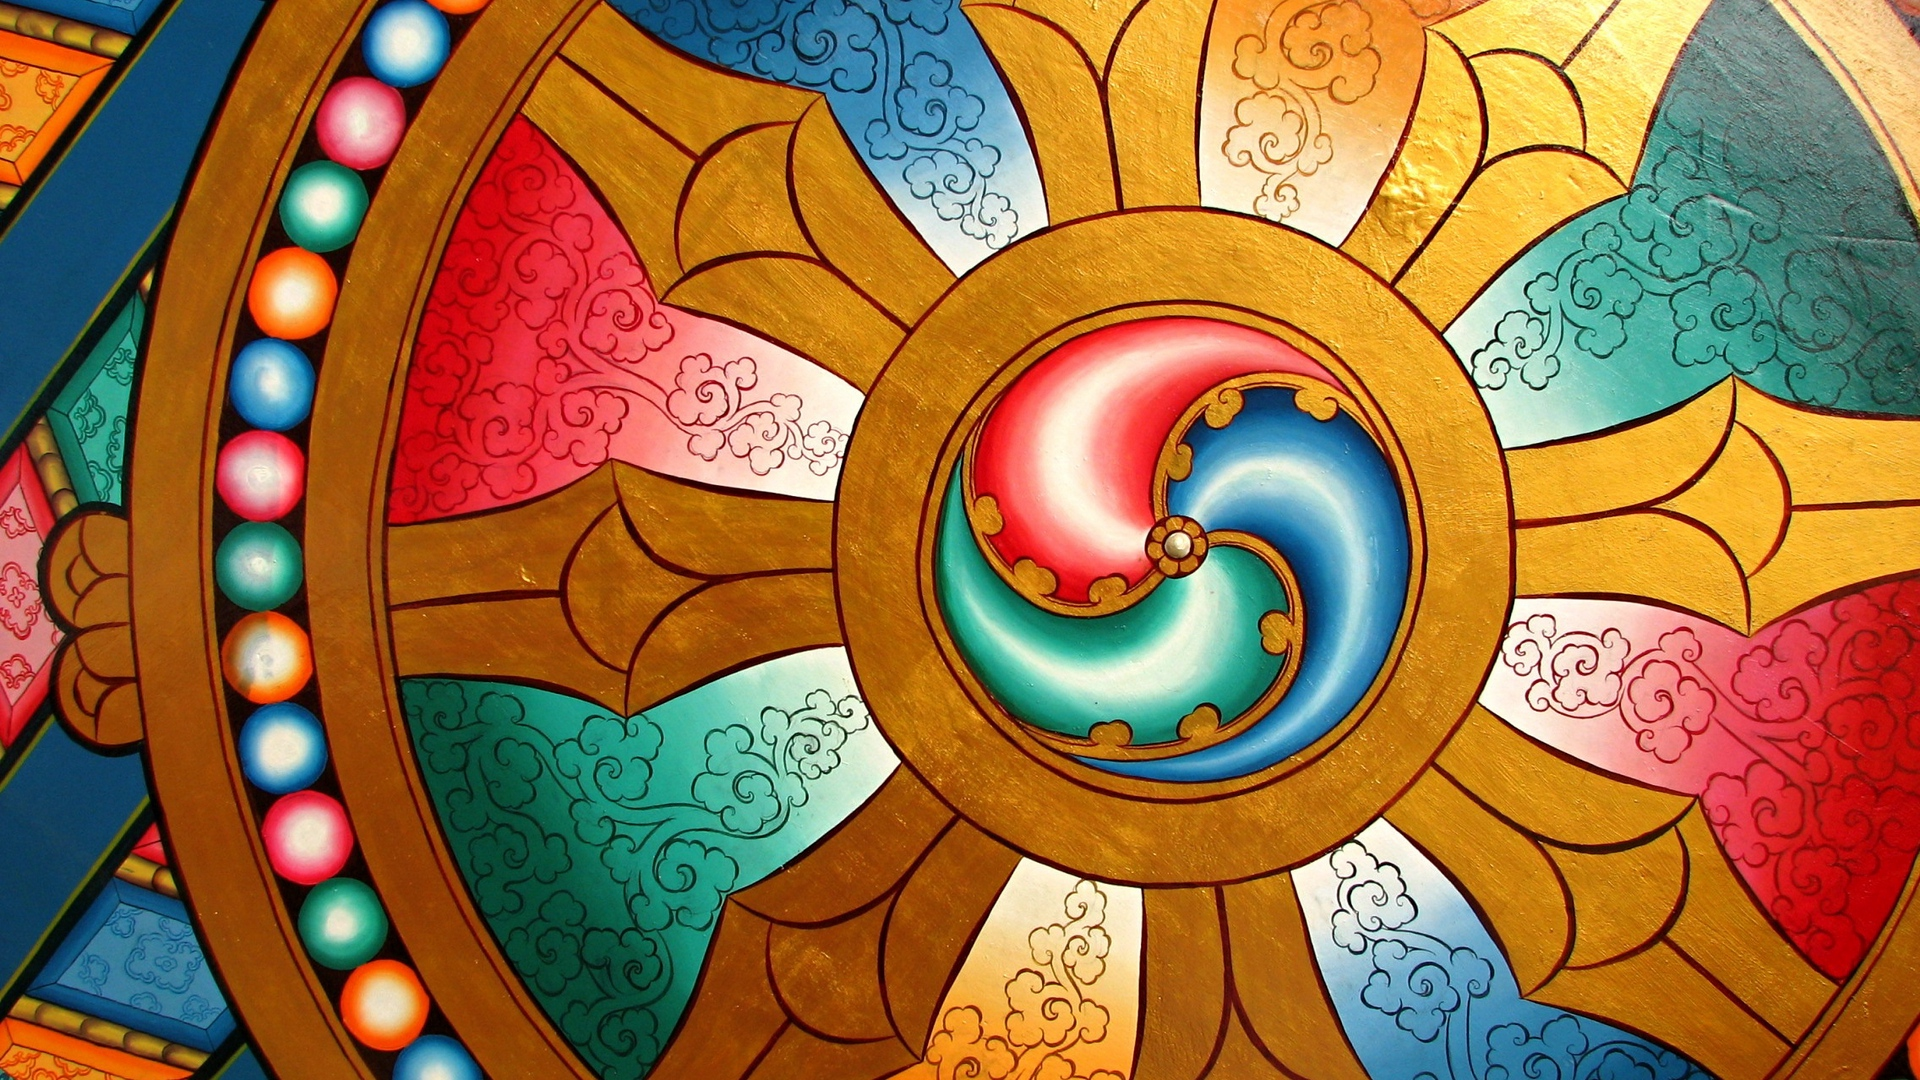 Download wallpaper 1920x1080 dharma wheel chakra buddhism full 1920x1080